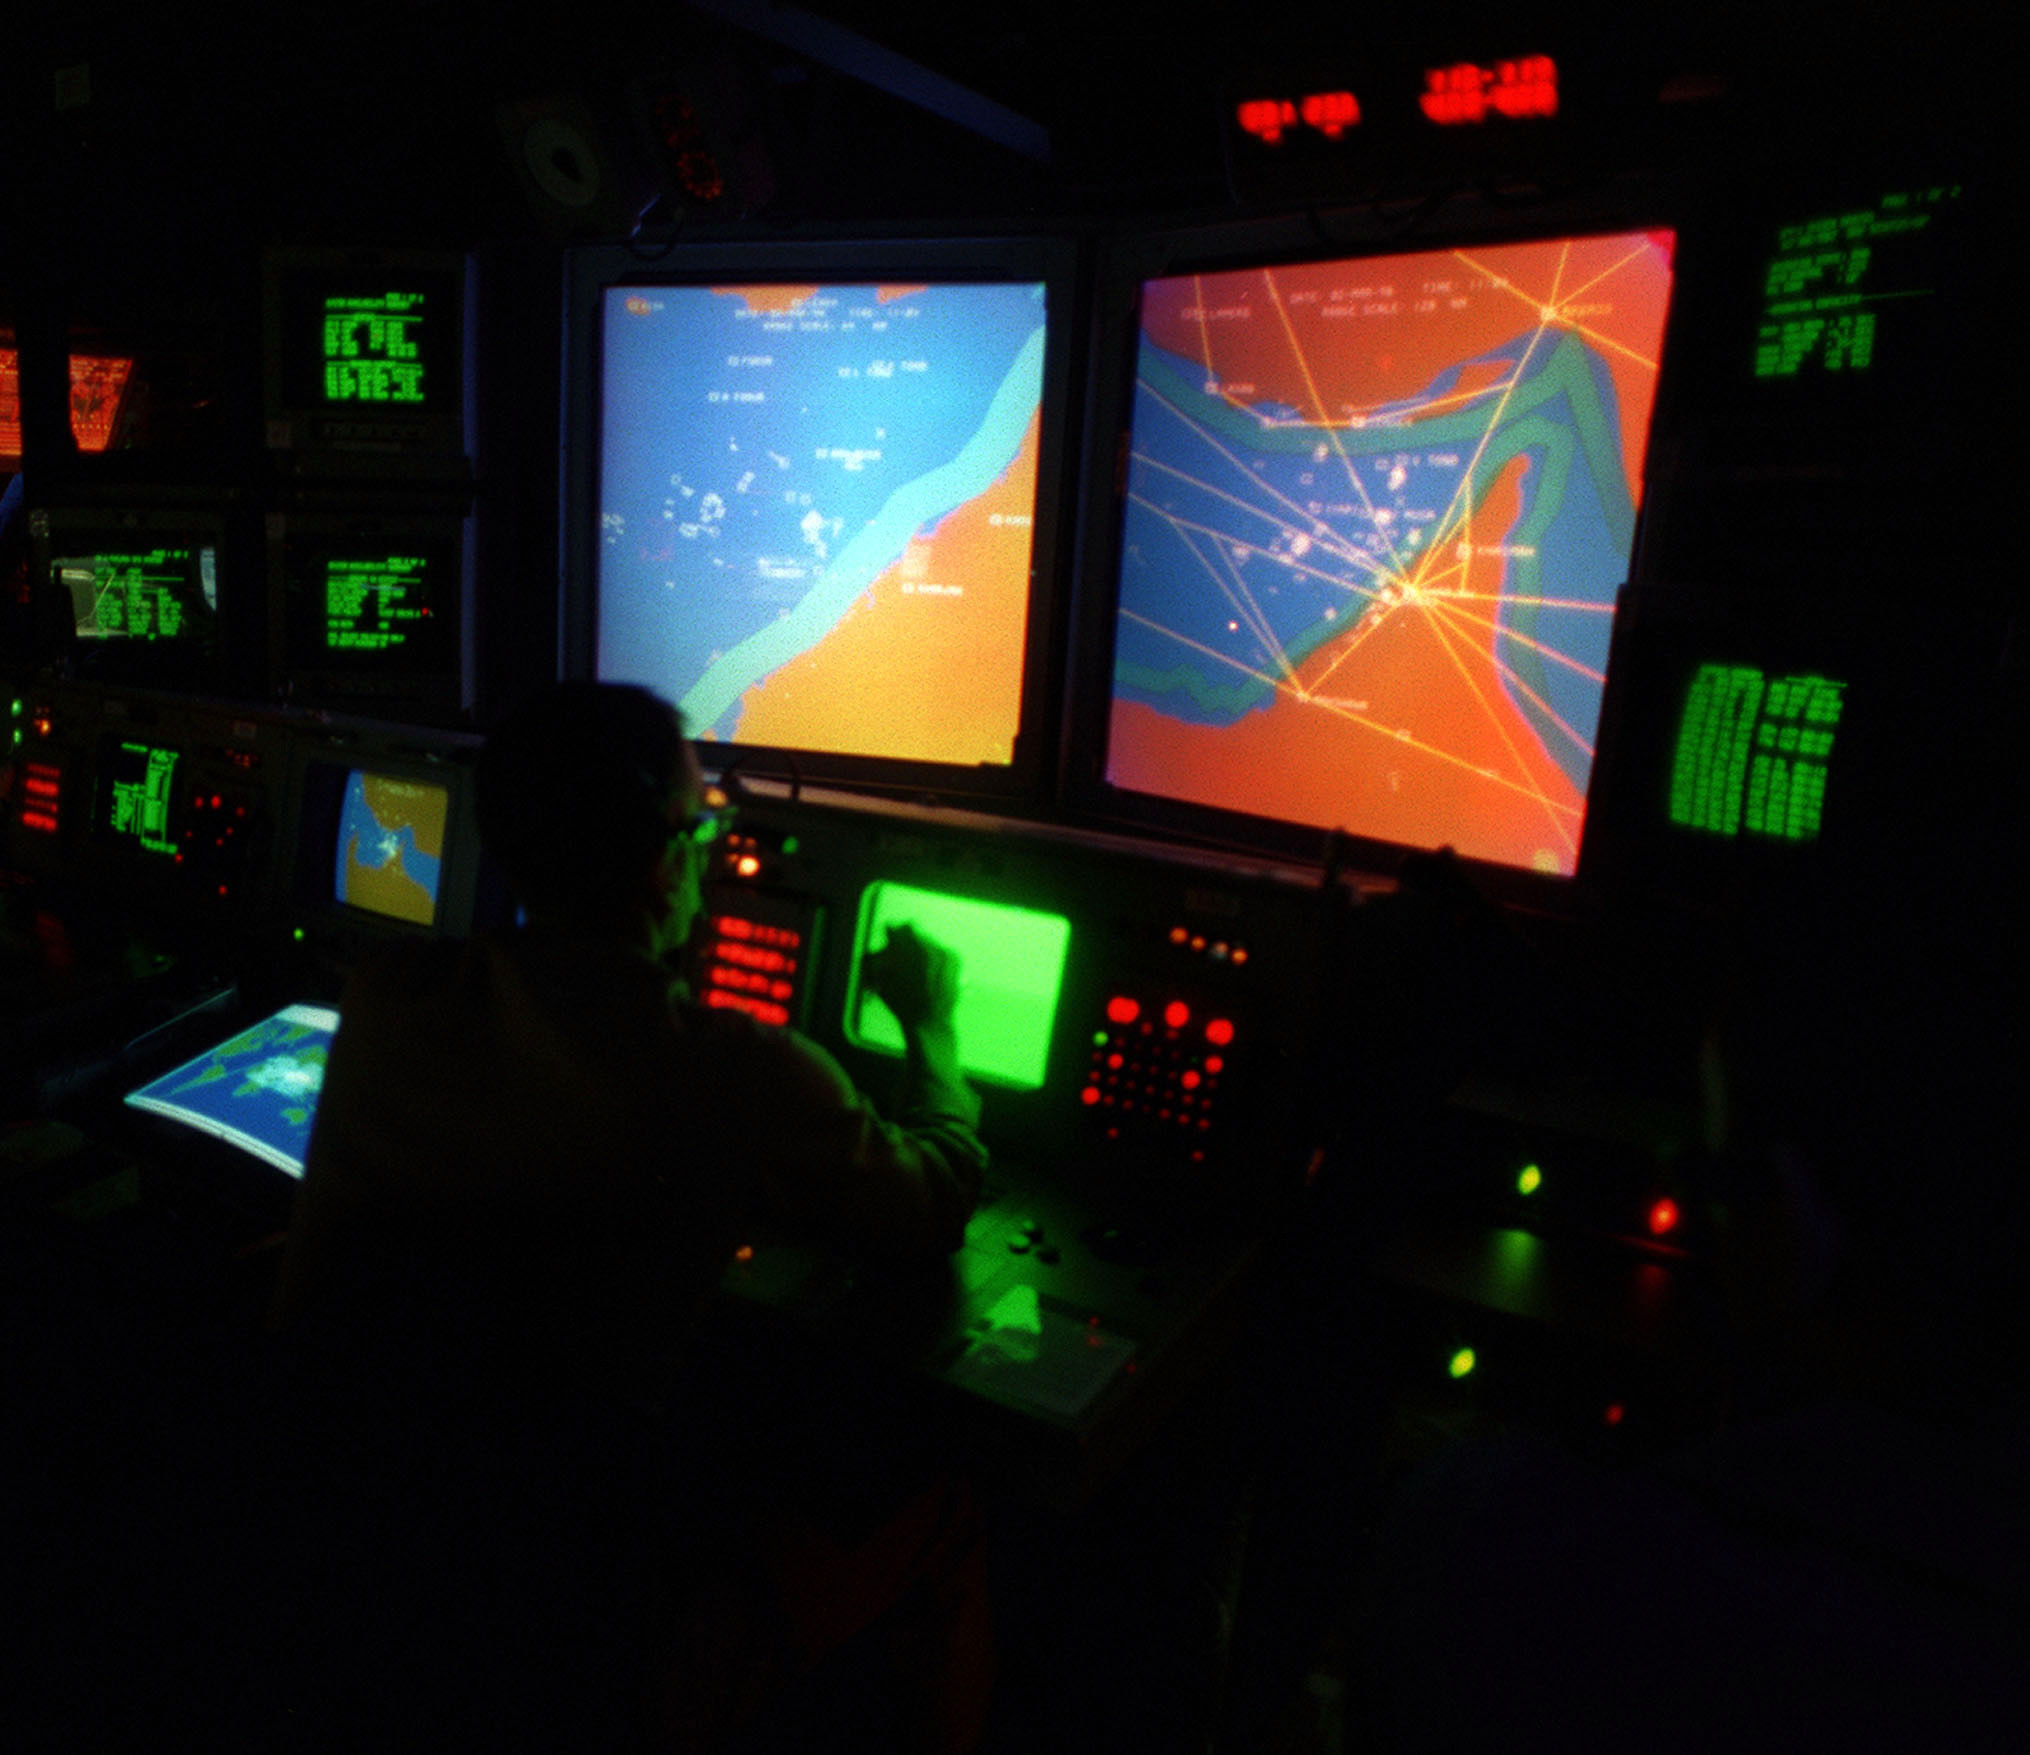 Ballistic Missile Defense